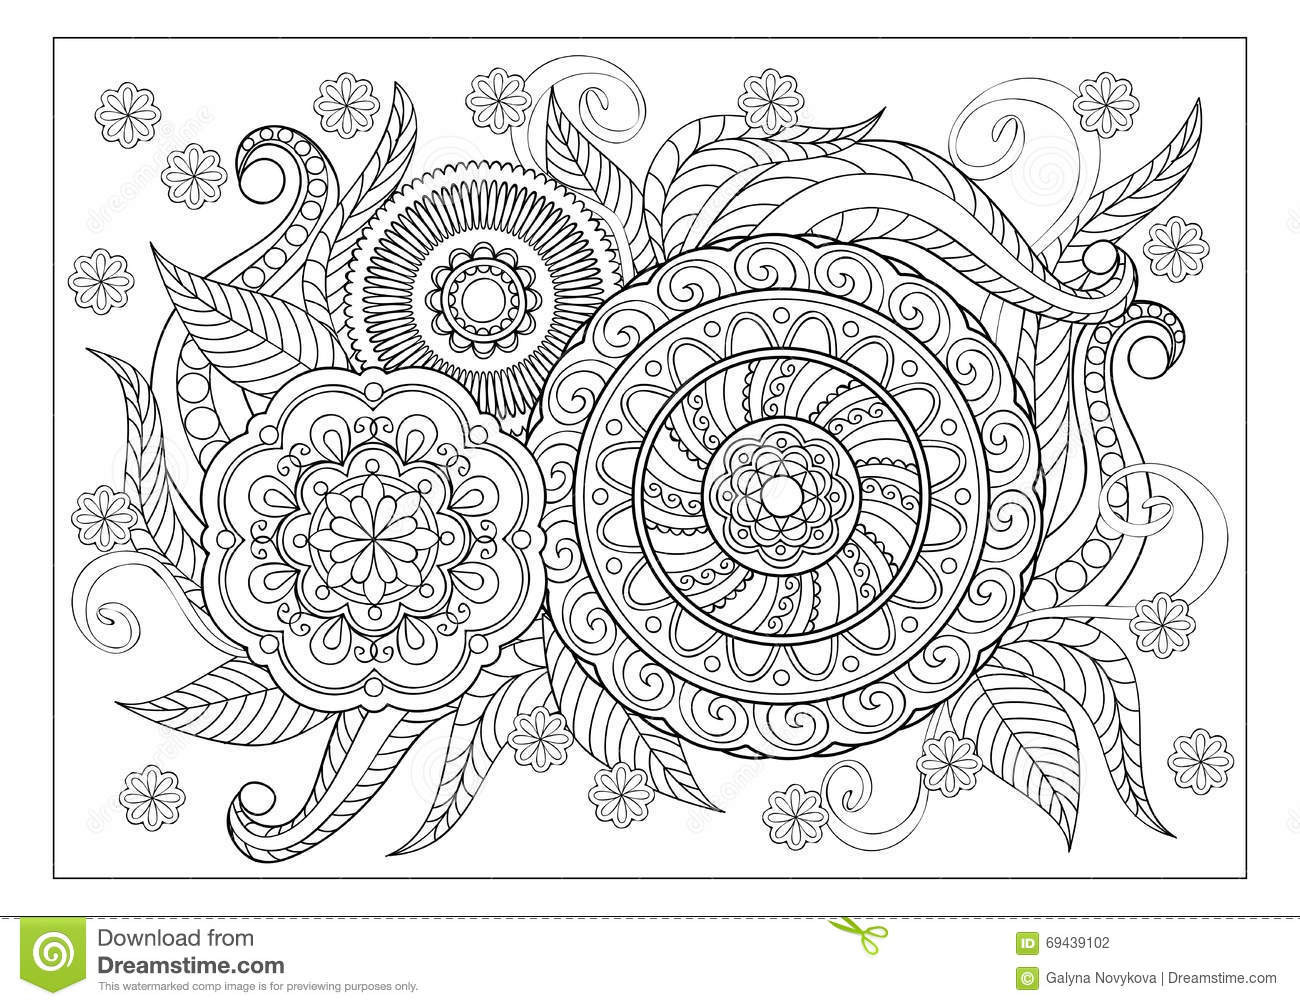 Hand Drawn Coloring Pages  Image For Adult Coloring Page Stock Vector Image